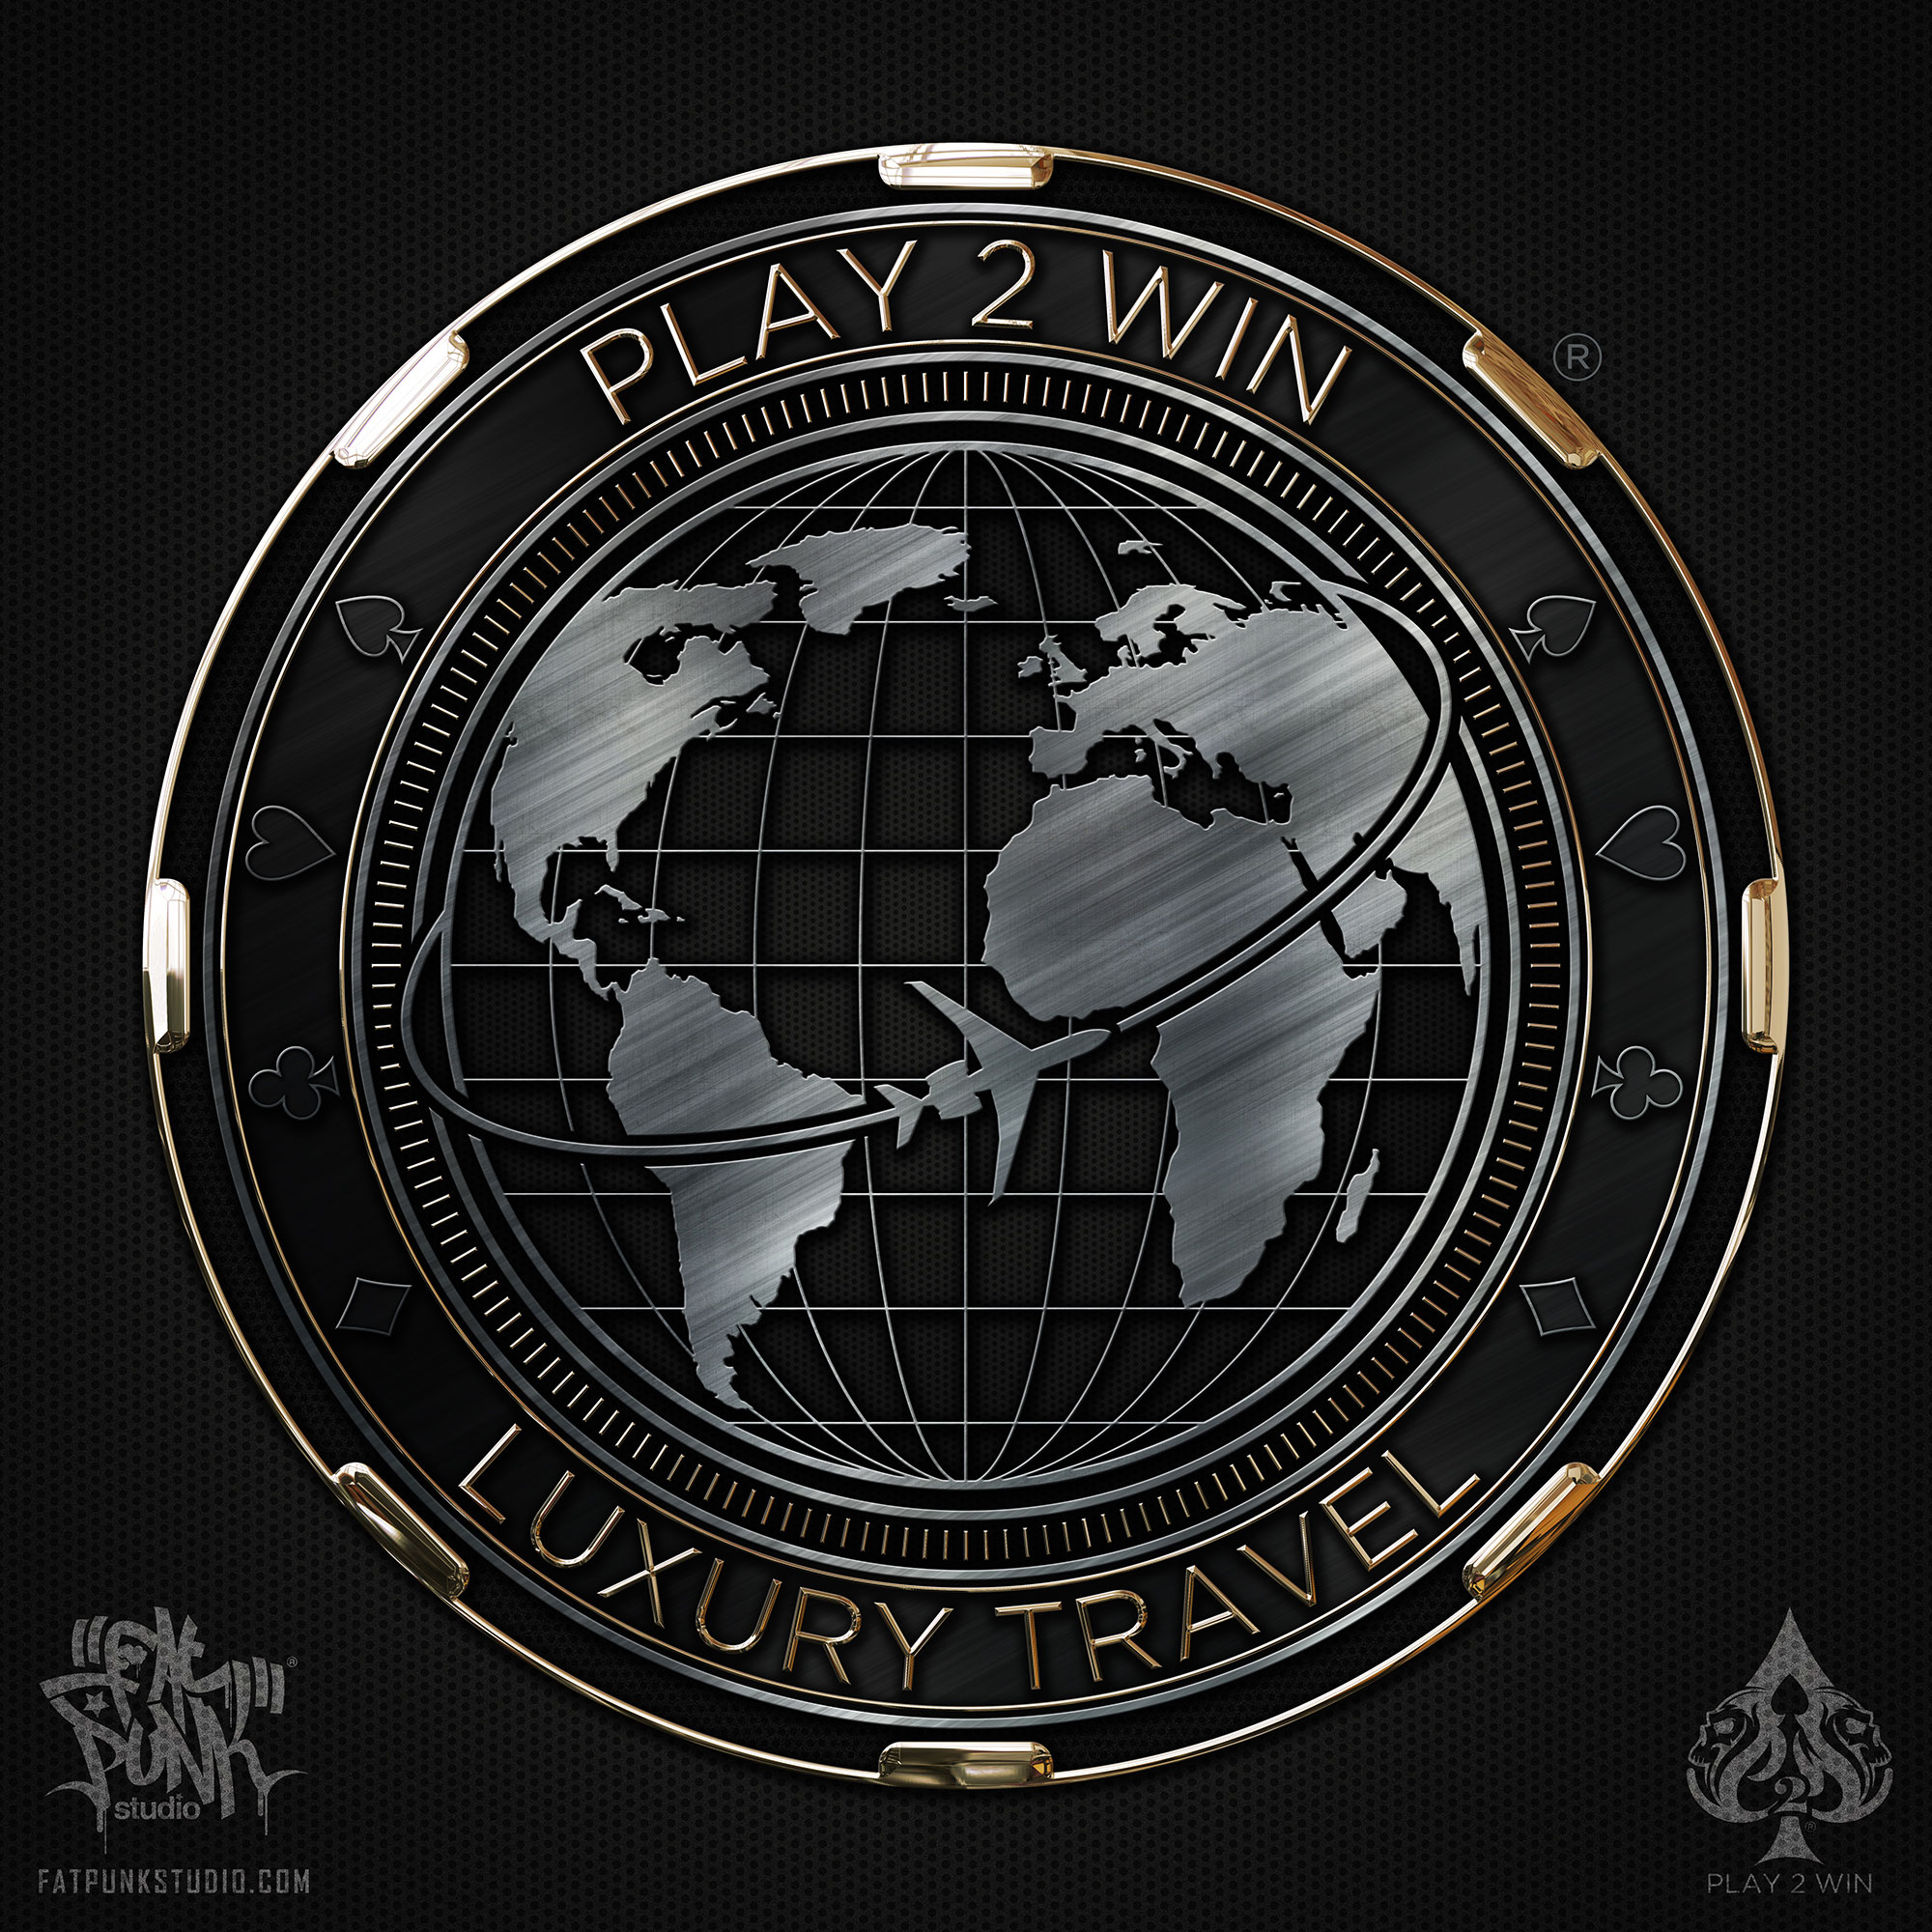 play-2-win-group-logo-design-04